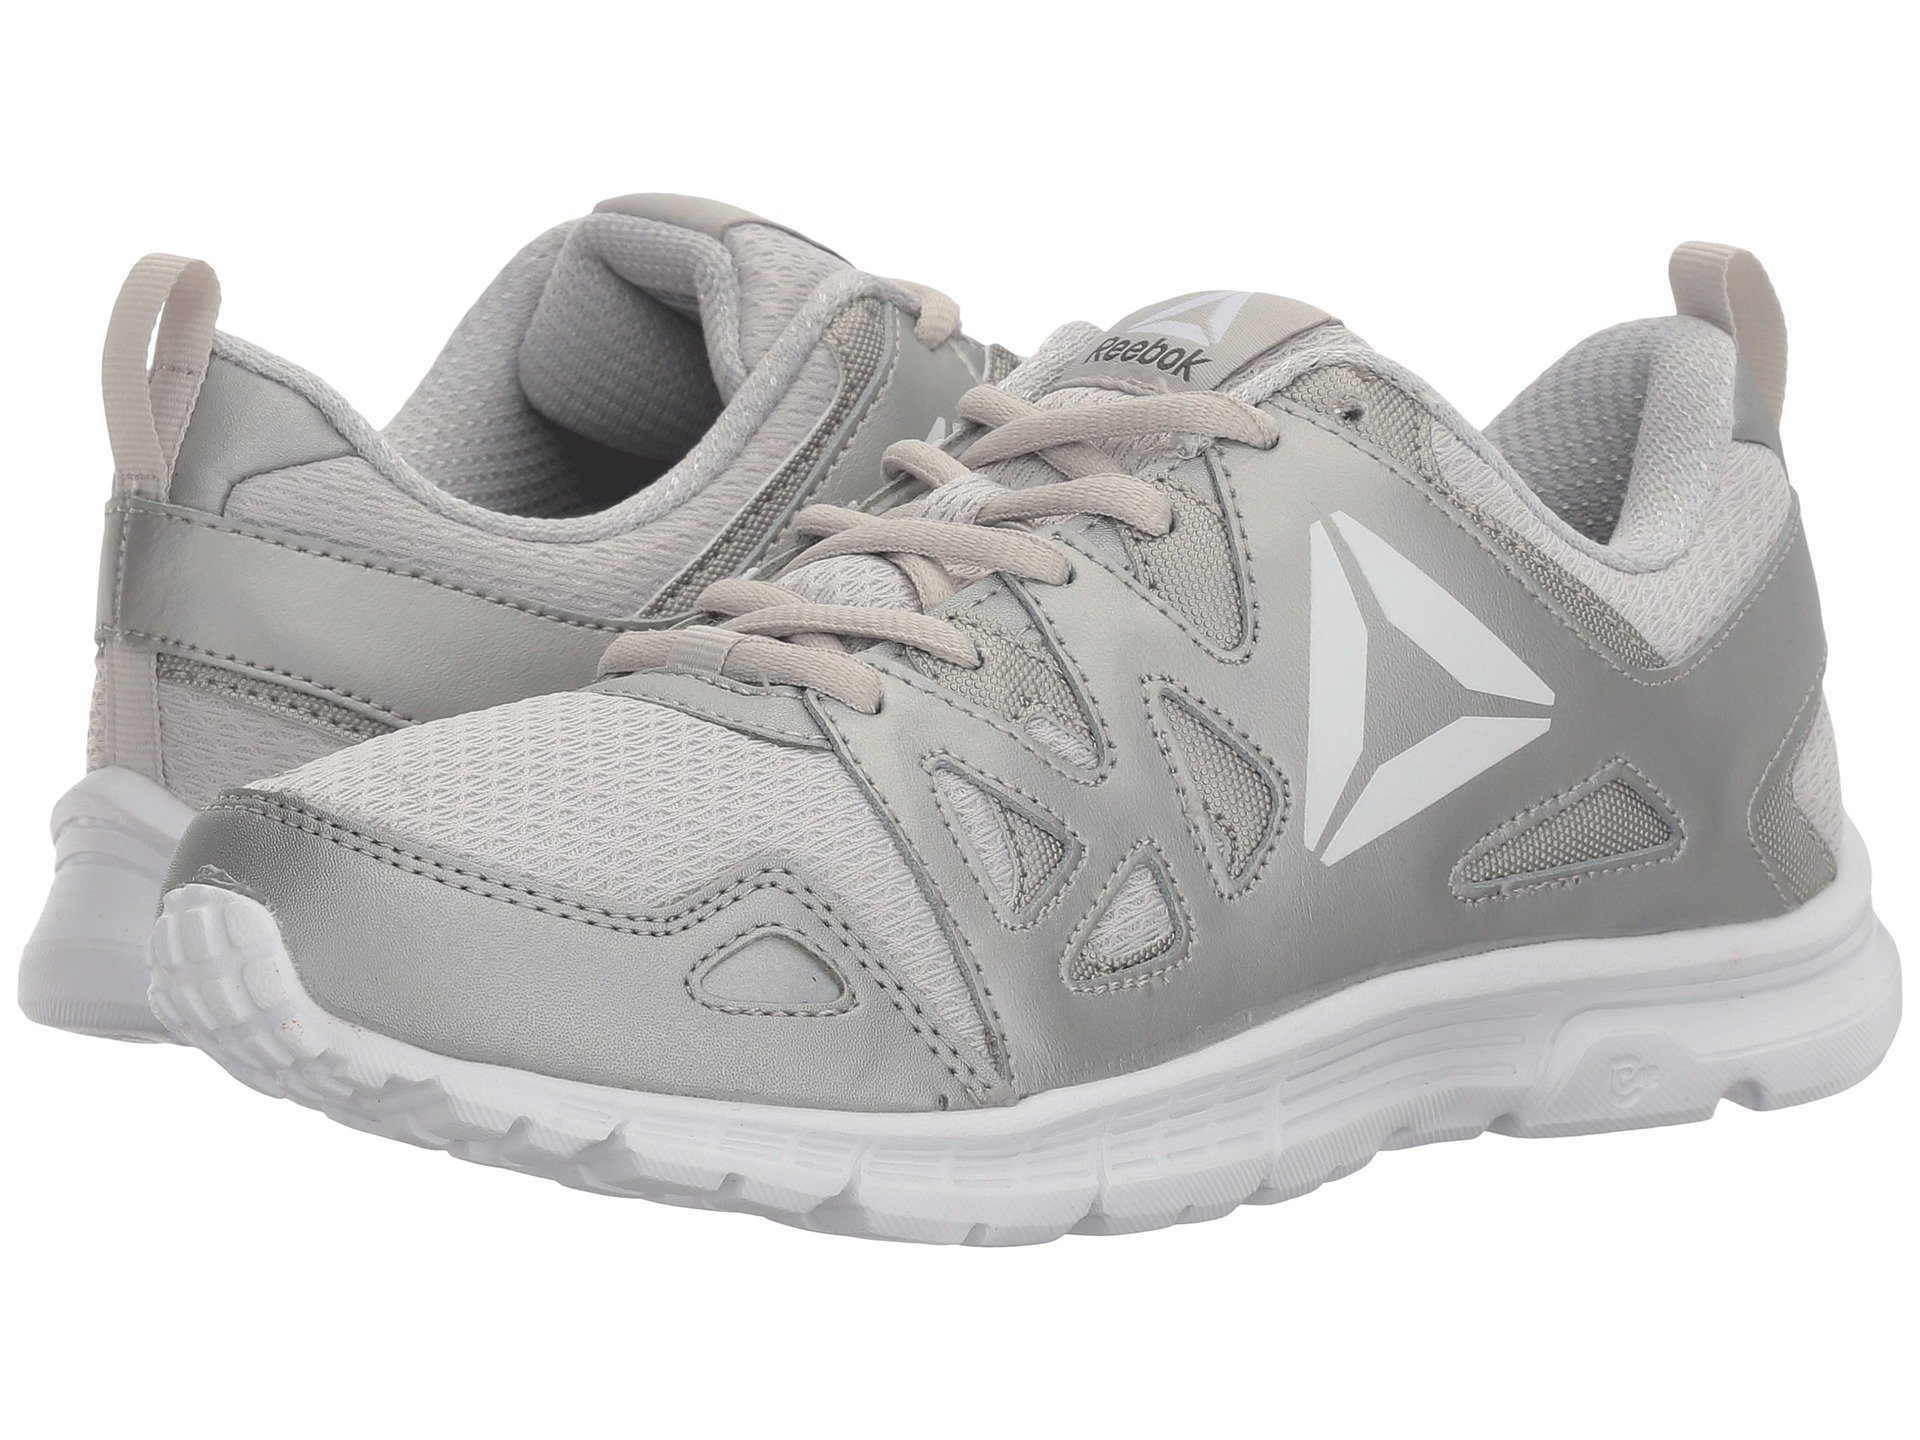 Run Supreme 3.0 Mt, Skull Grey/Silver/White